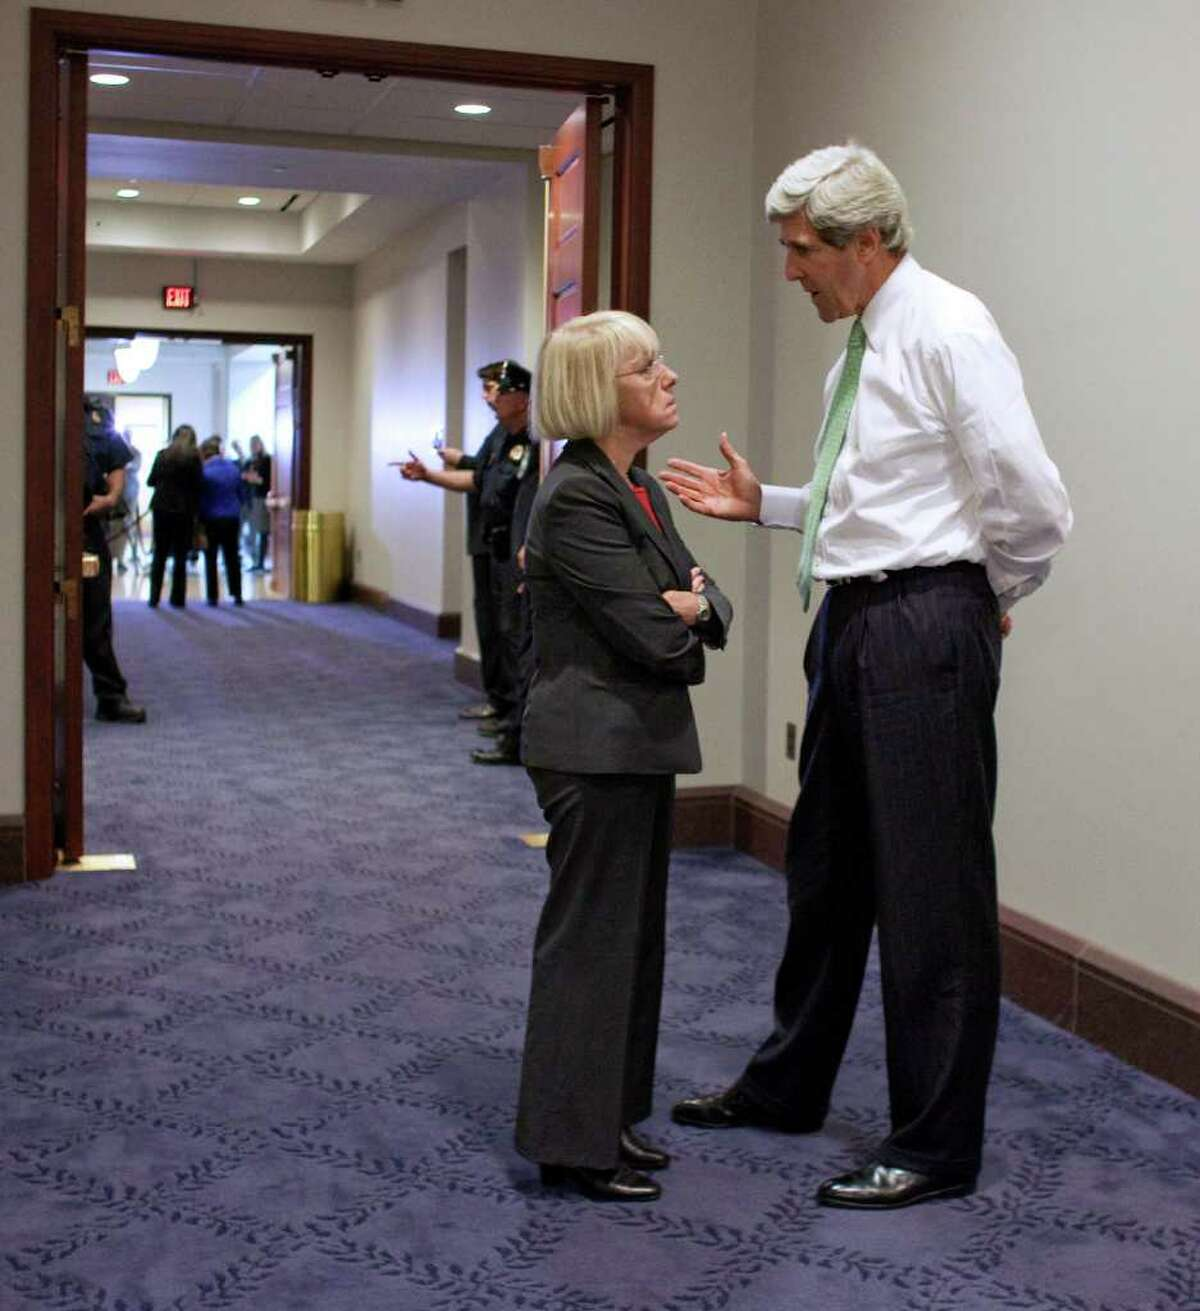 FILE - In this Oct. 6, 2011, file photo Supercommittee co-chair Sen. Patty Murray, D-Wash., left, talks with Supercommittee member Sen. John Kerry, D-Mass., in a hallway on Capitol Hill during a break in the Supercommittee's meeting in Washington. After weeks of secret meetings the Supercommittee seems no closer to reaching its assigned goal of at least $1.2 trillion in deficit savings over the next 10 years than it was when talks began. Lawmakers, aides and lobbyists closely following the group are increasingly skeptical, even pessimistic. (AP Photo/Harry Hamburg, File)